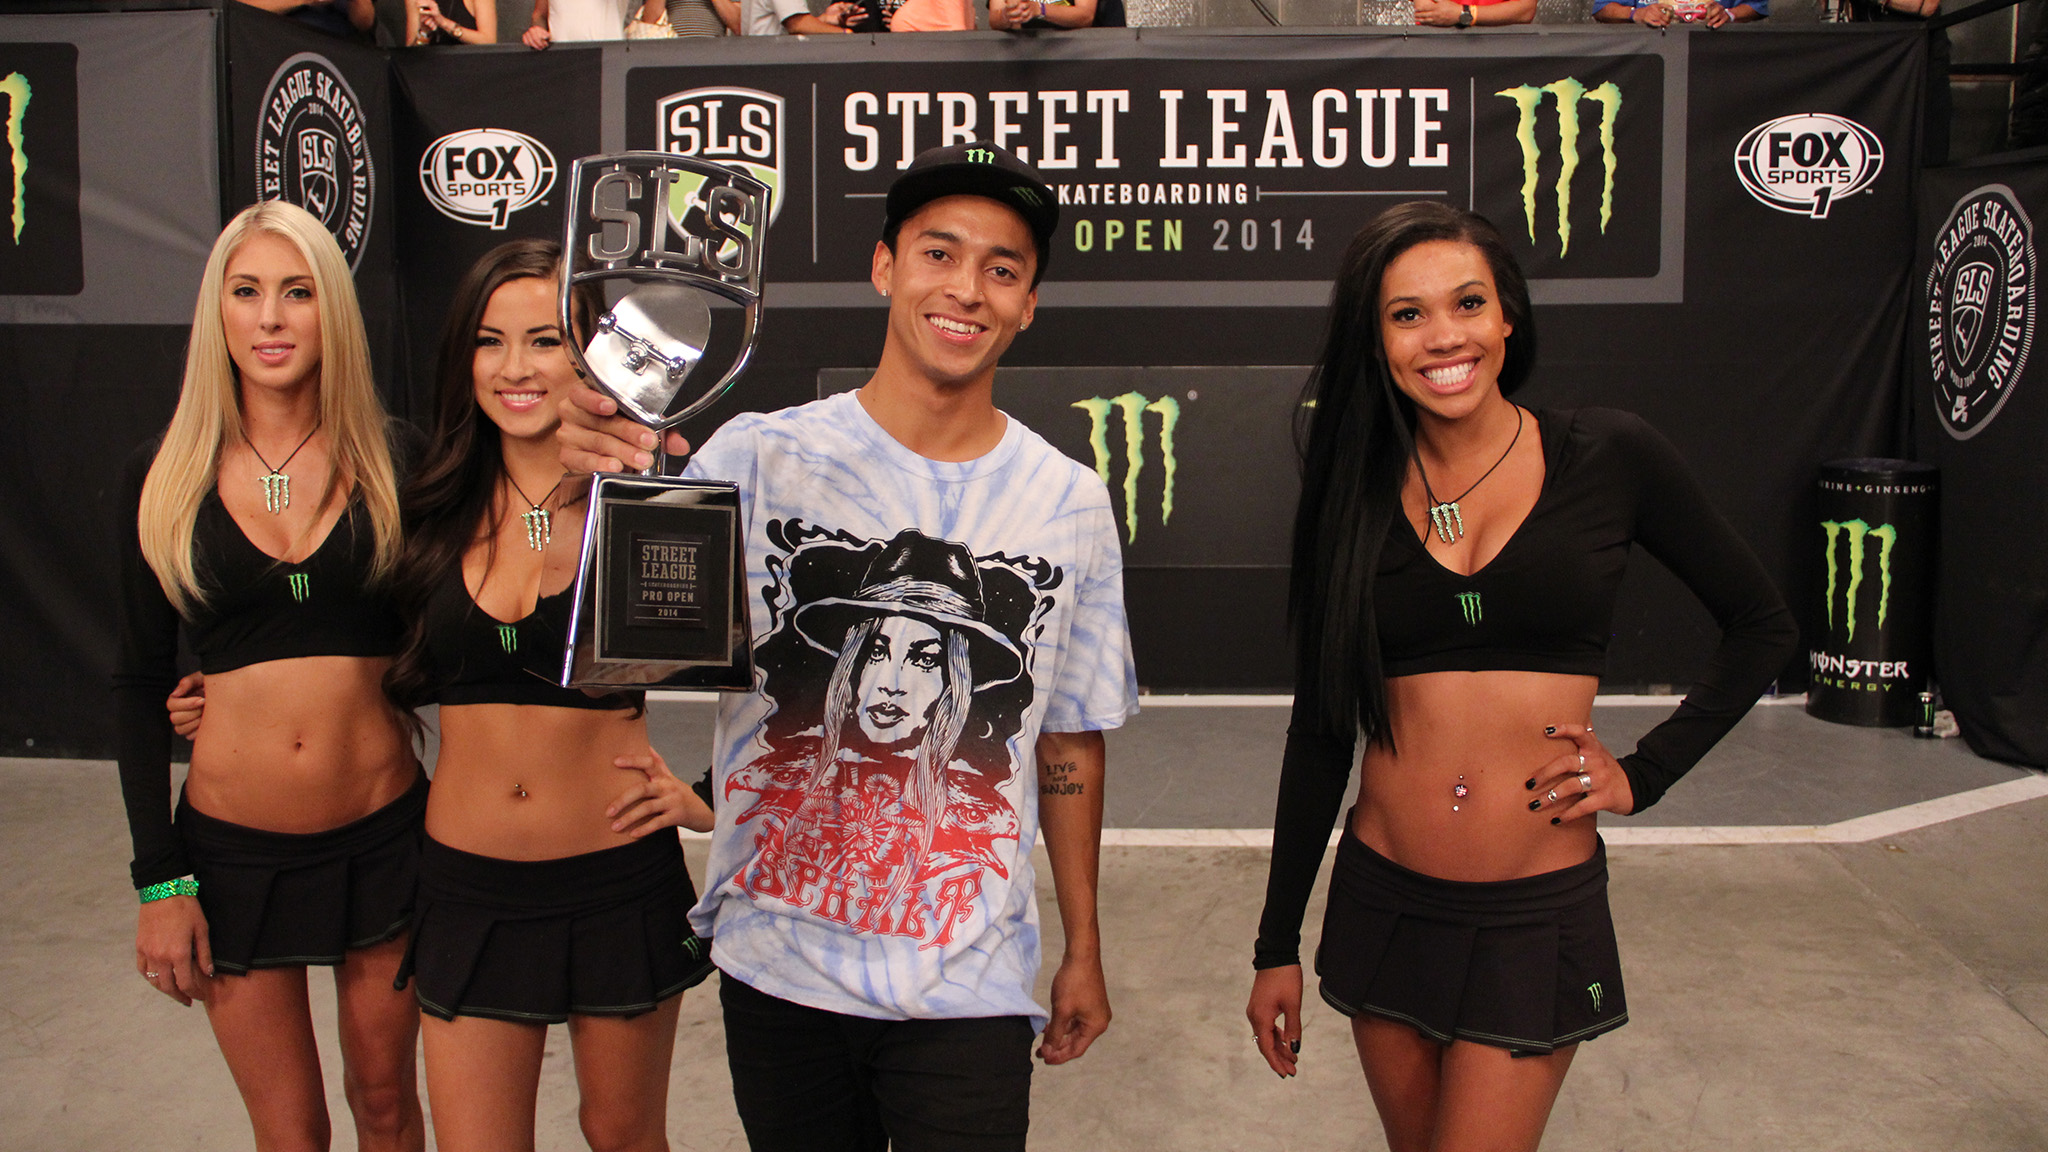 Nyjah Huston, winner